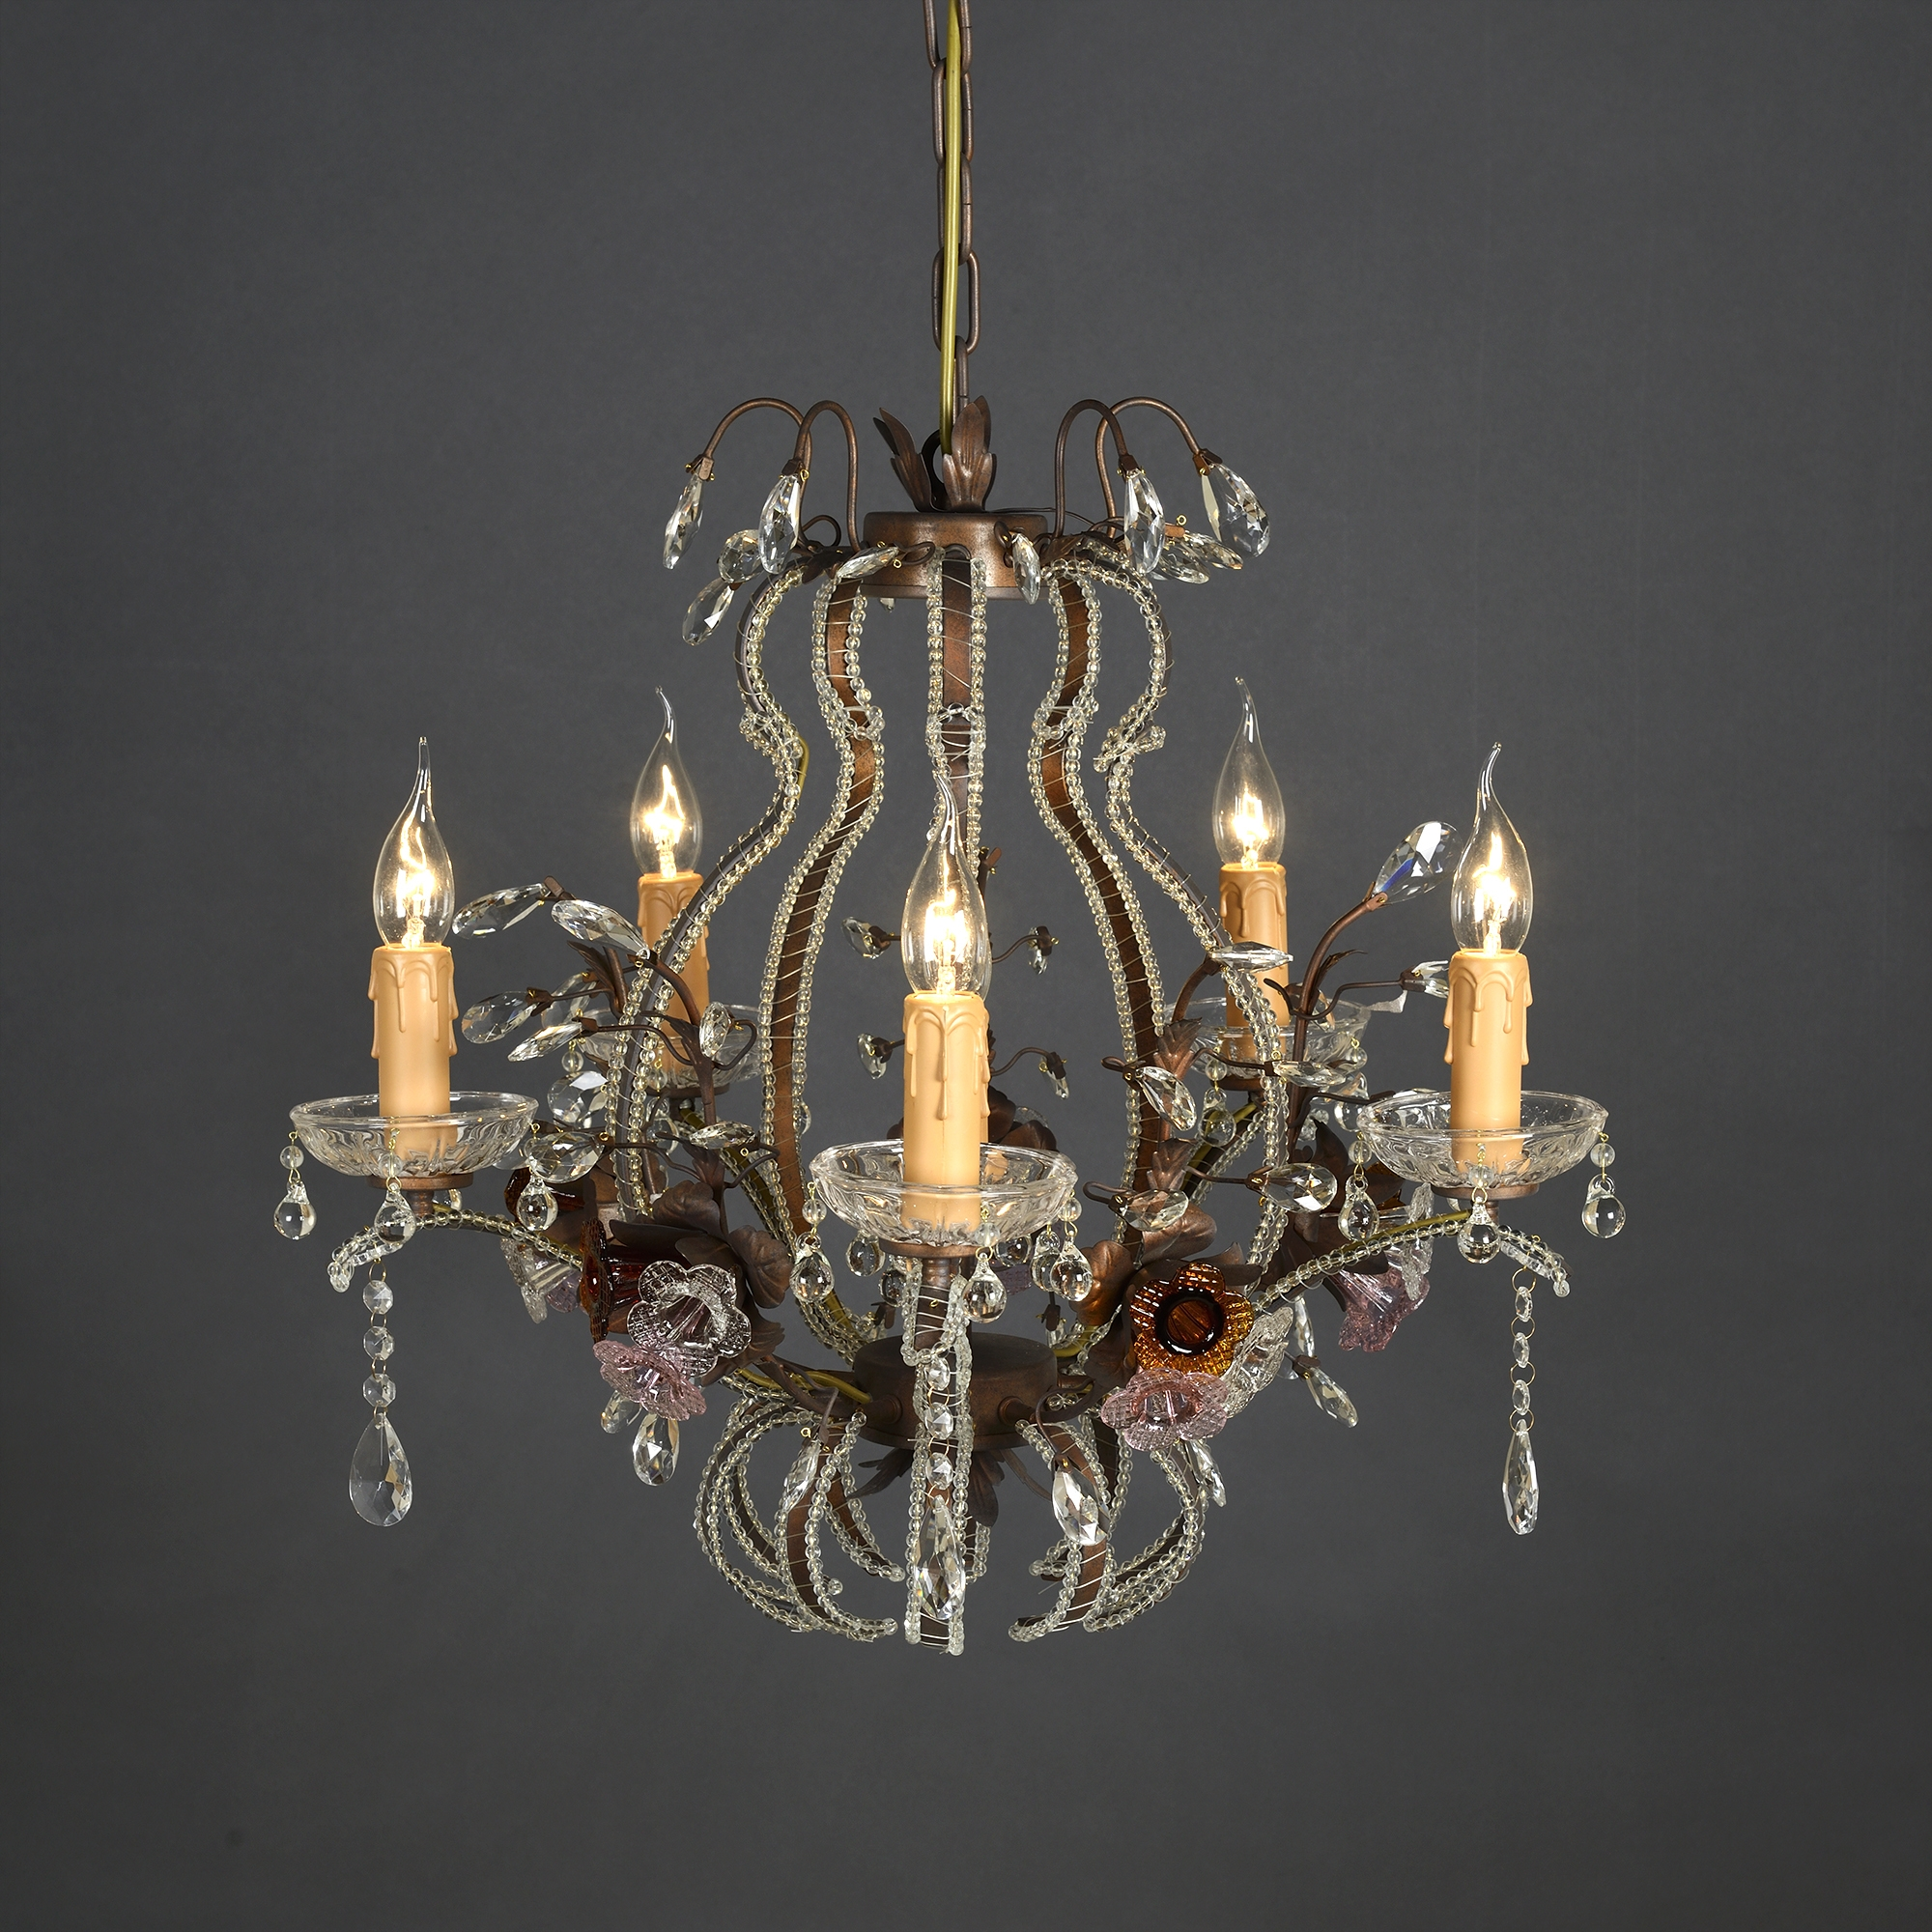 6 Light Chandelier - Bronze and Pink Mustard